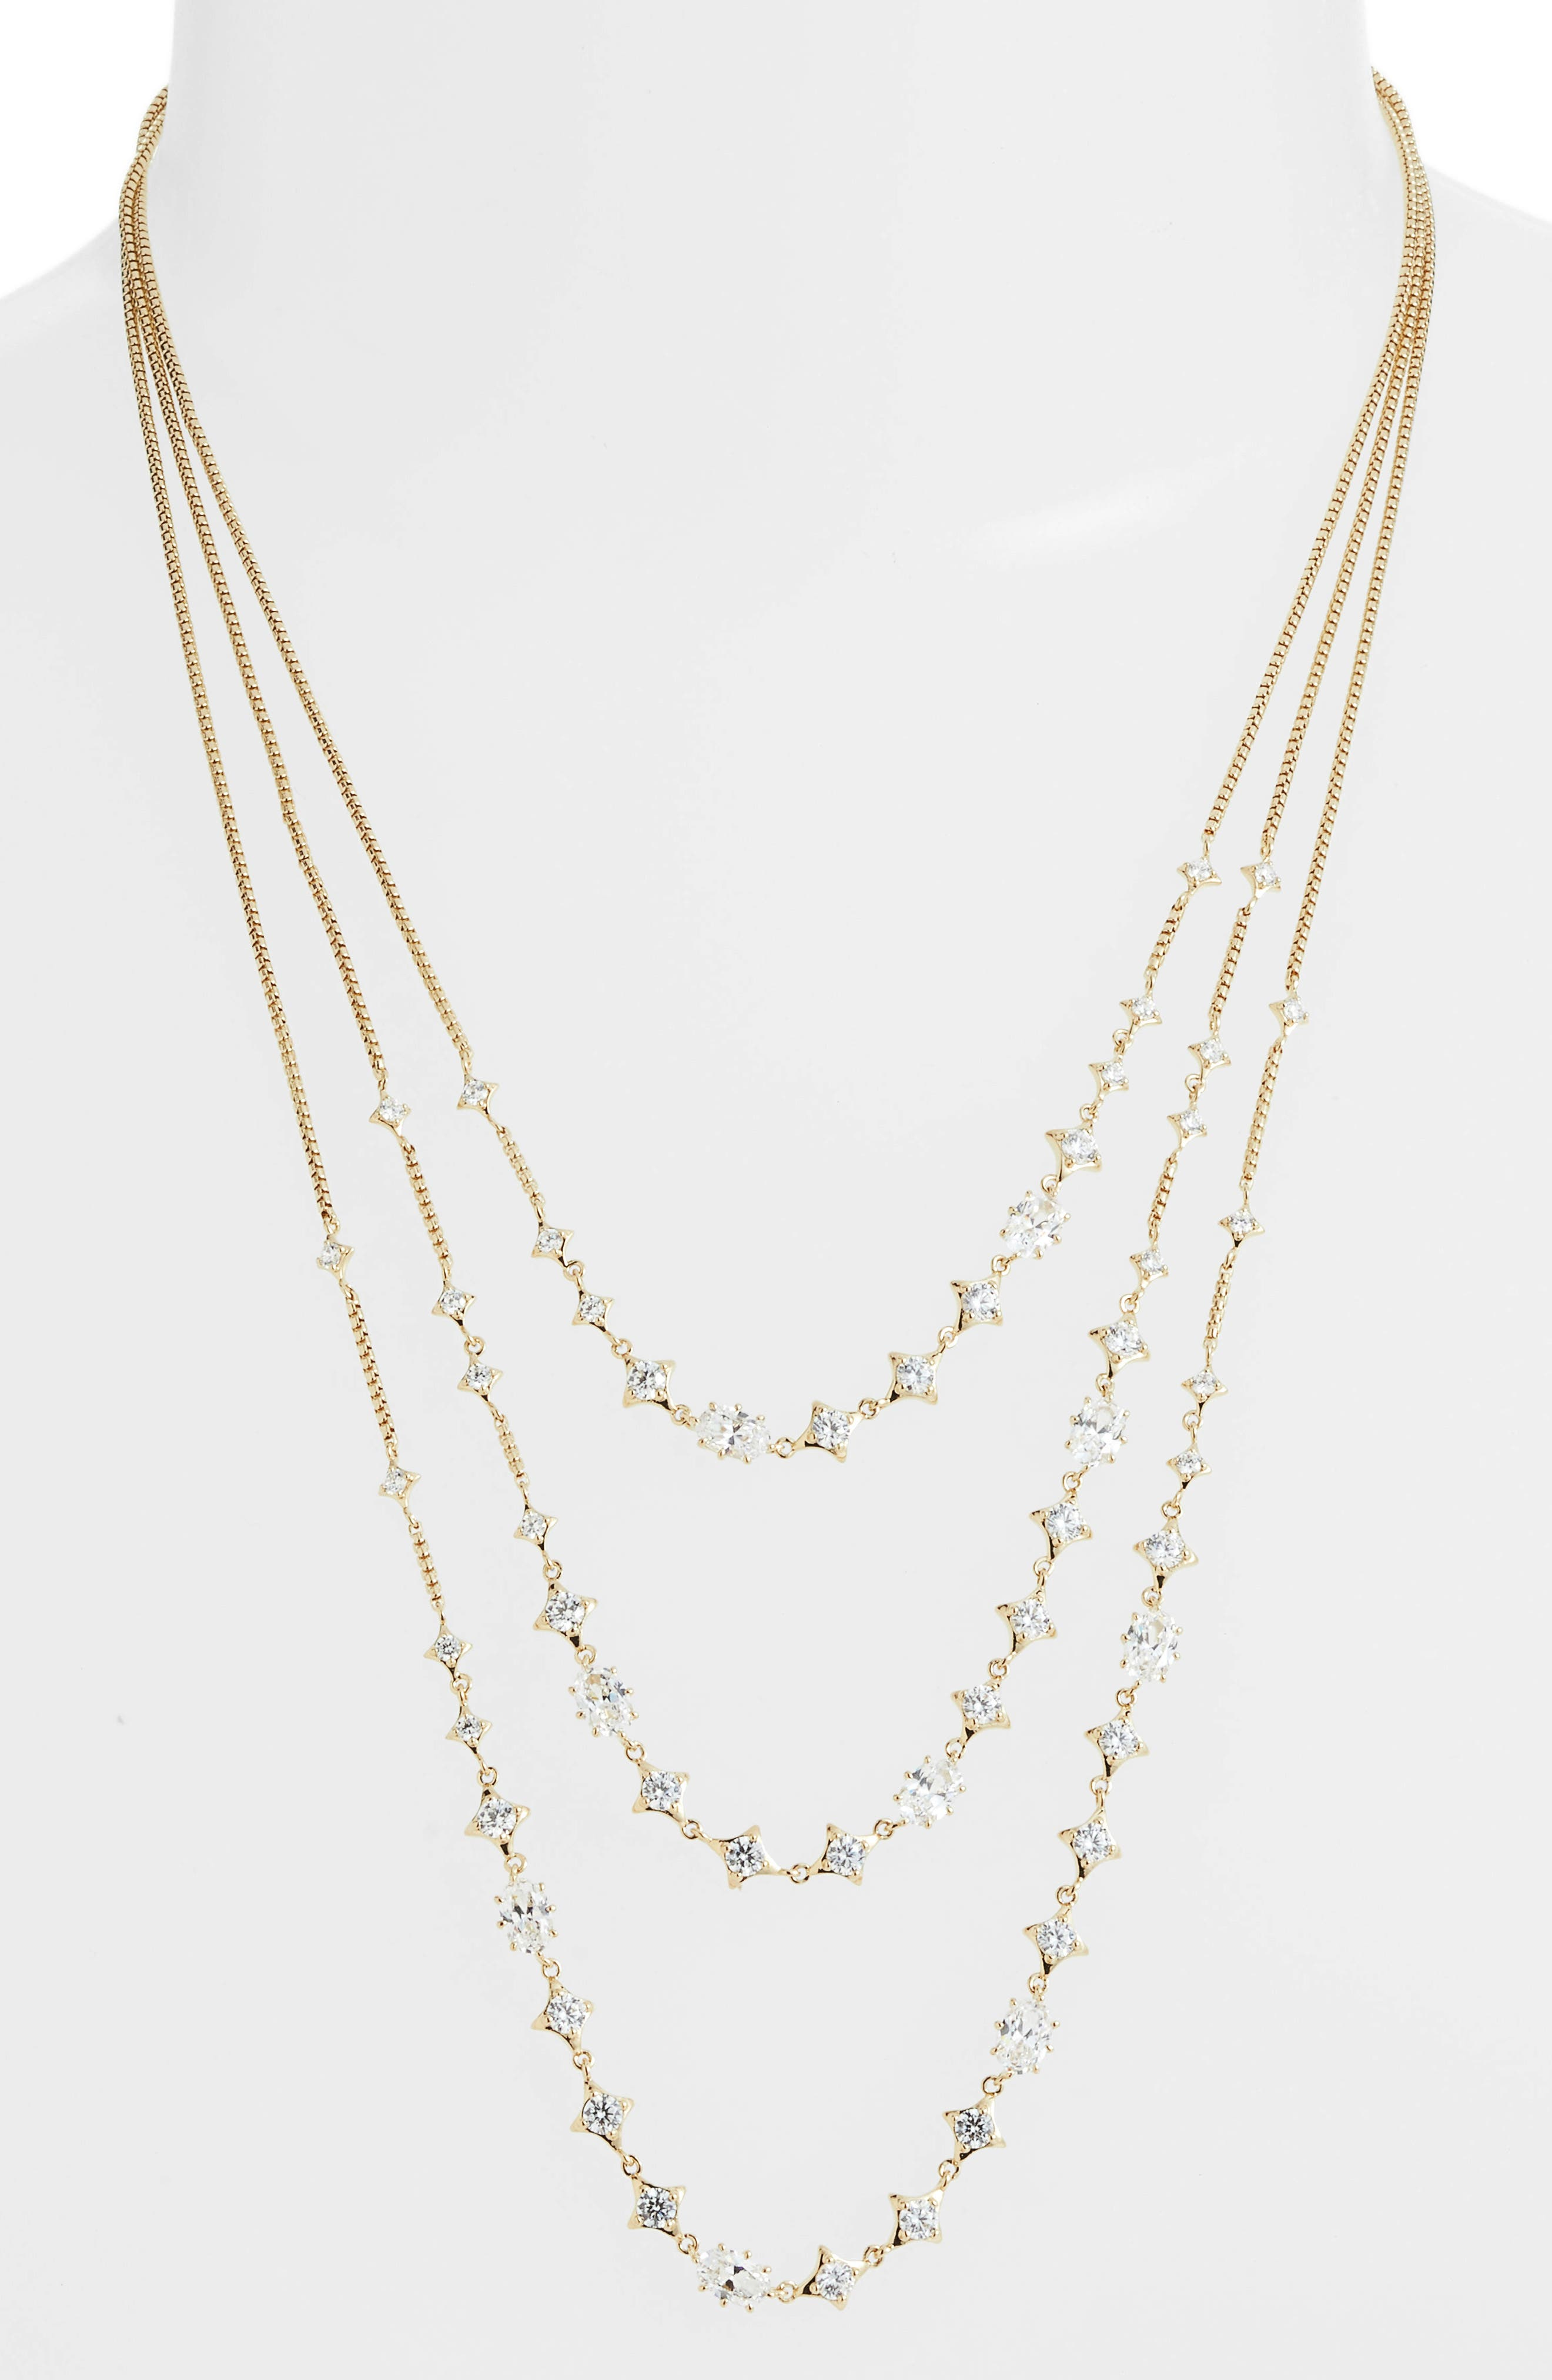 Boho Layered Necklace,                         Main,                         color, GOLD/ CLEAR